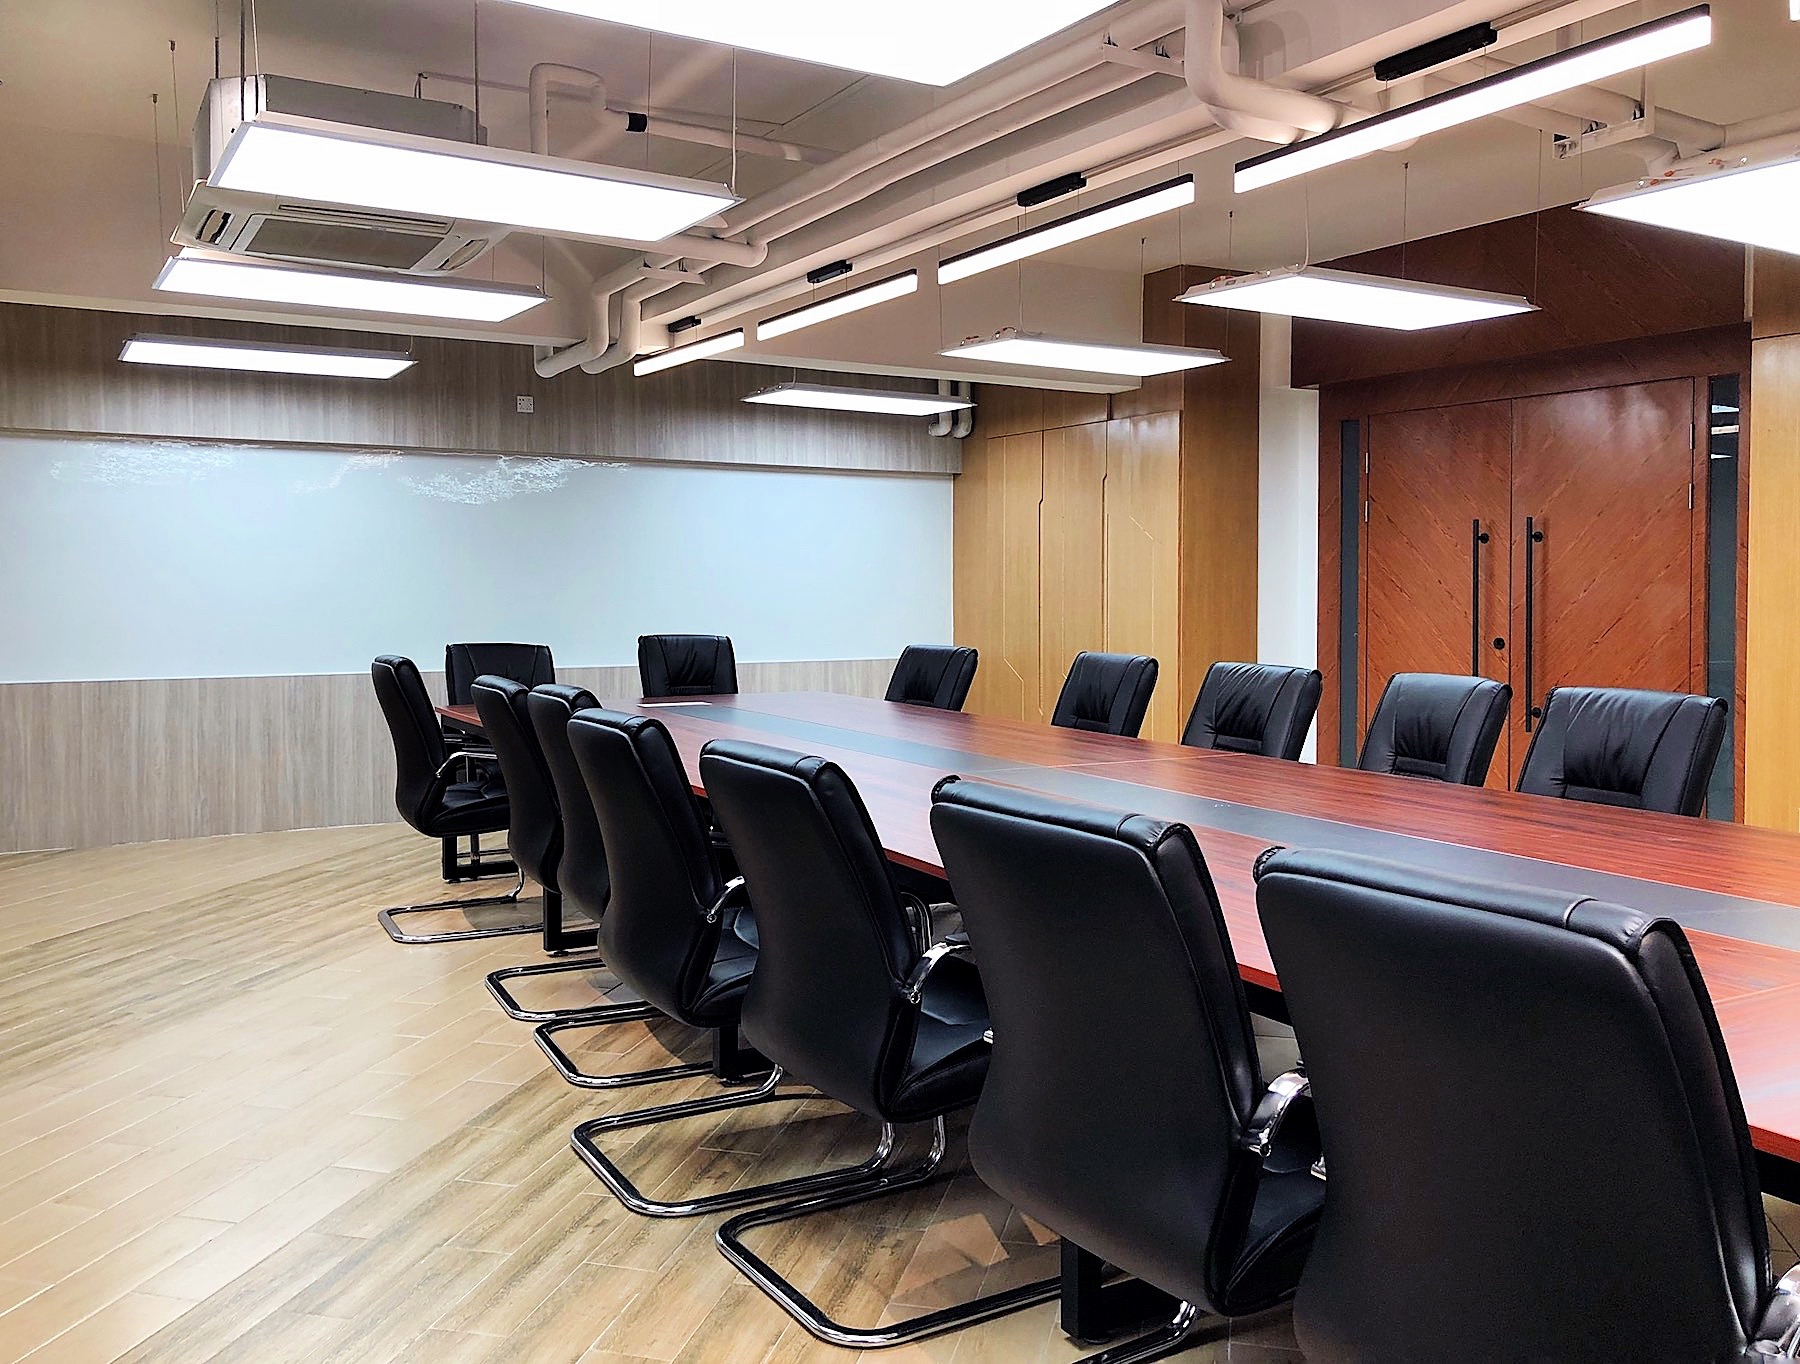 Grandway Office Renovation 2018 Main Conference Room 008